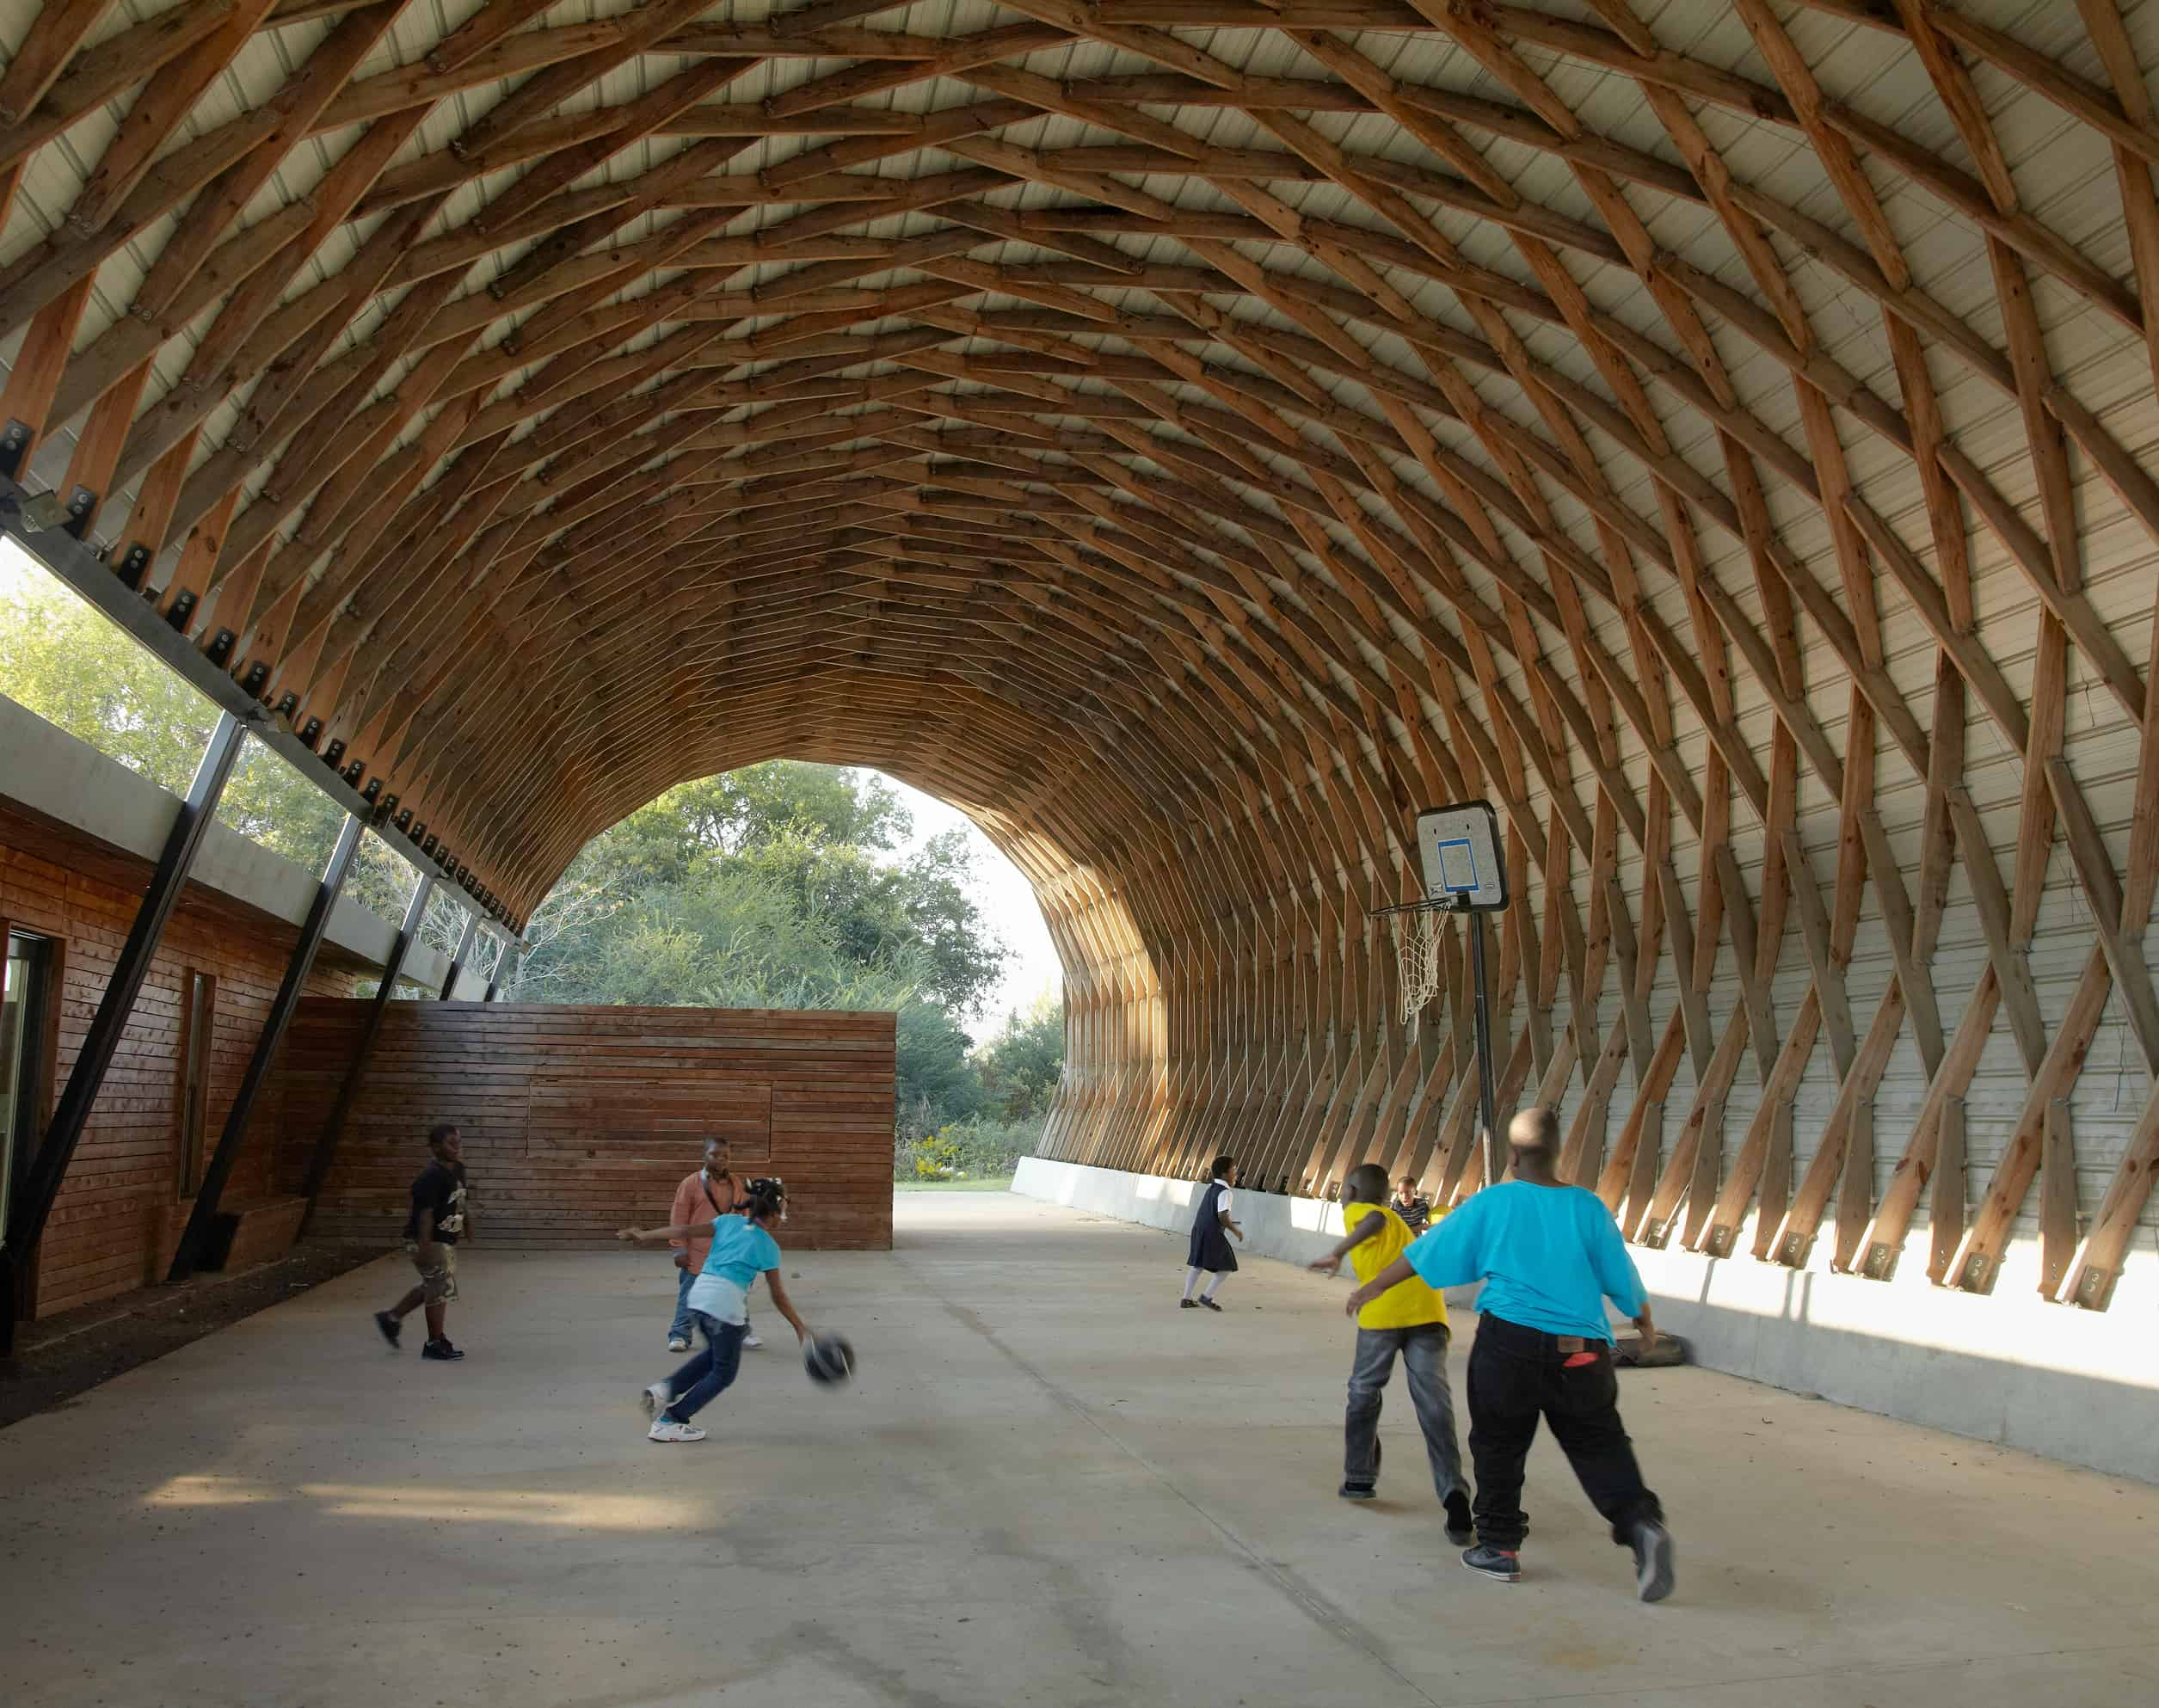 kids play basketball under the Lamella structure attached to the Club